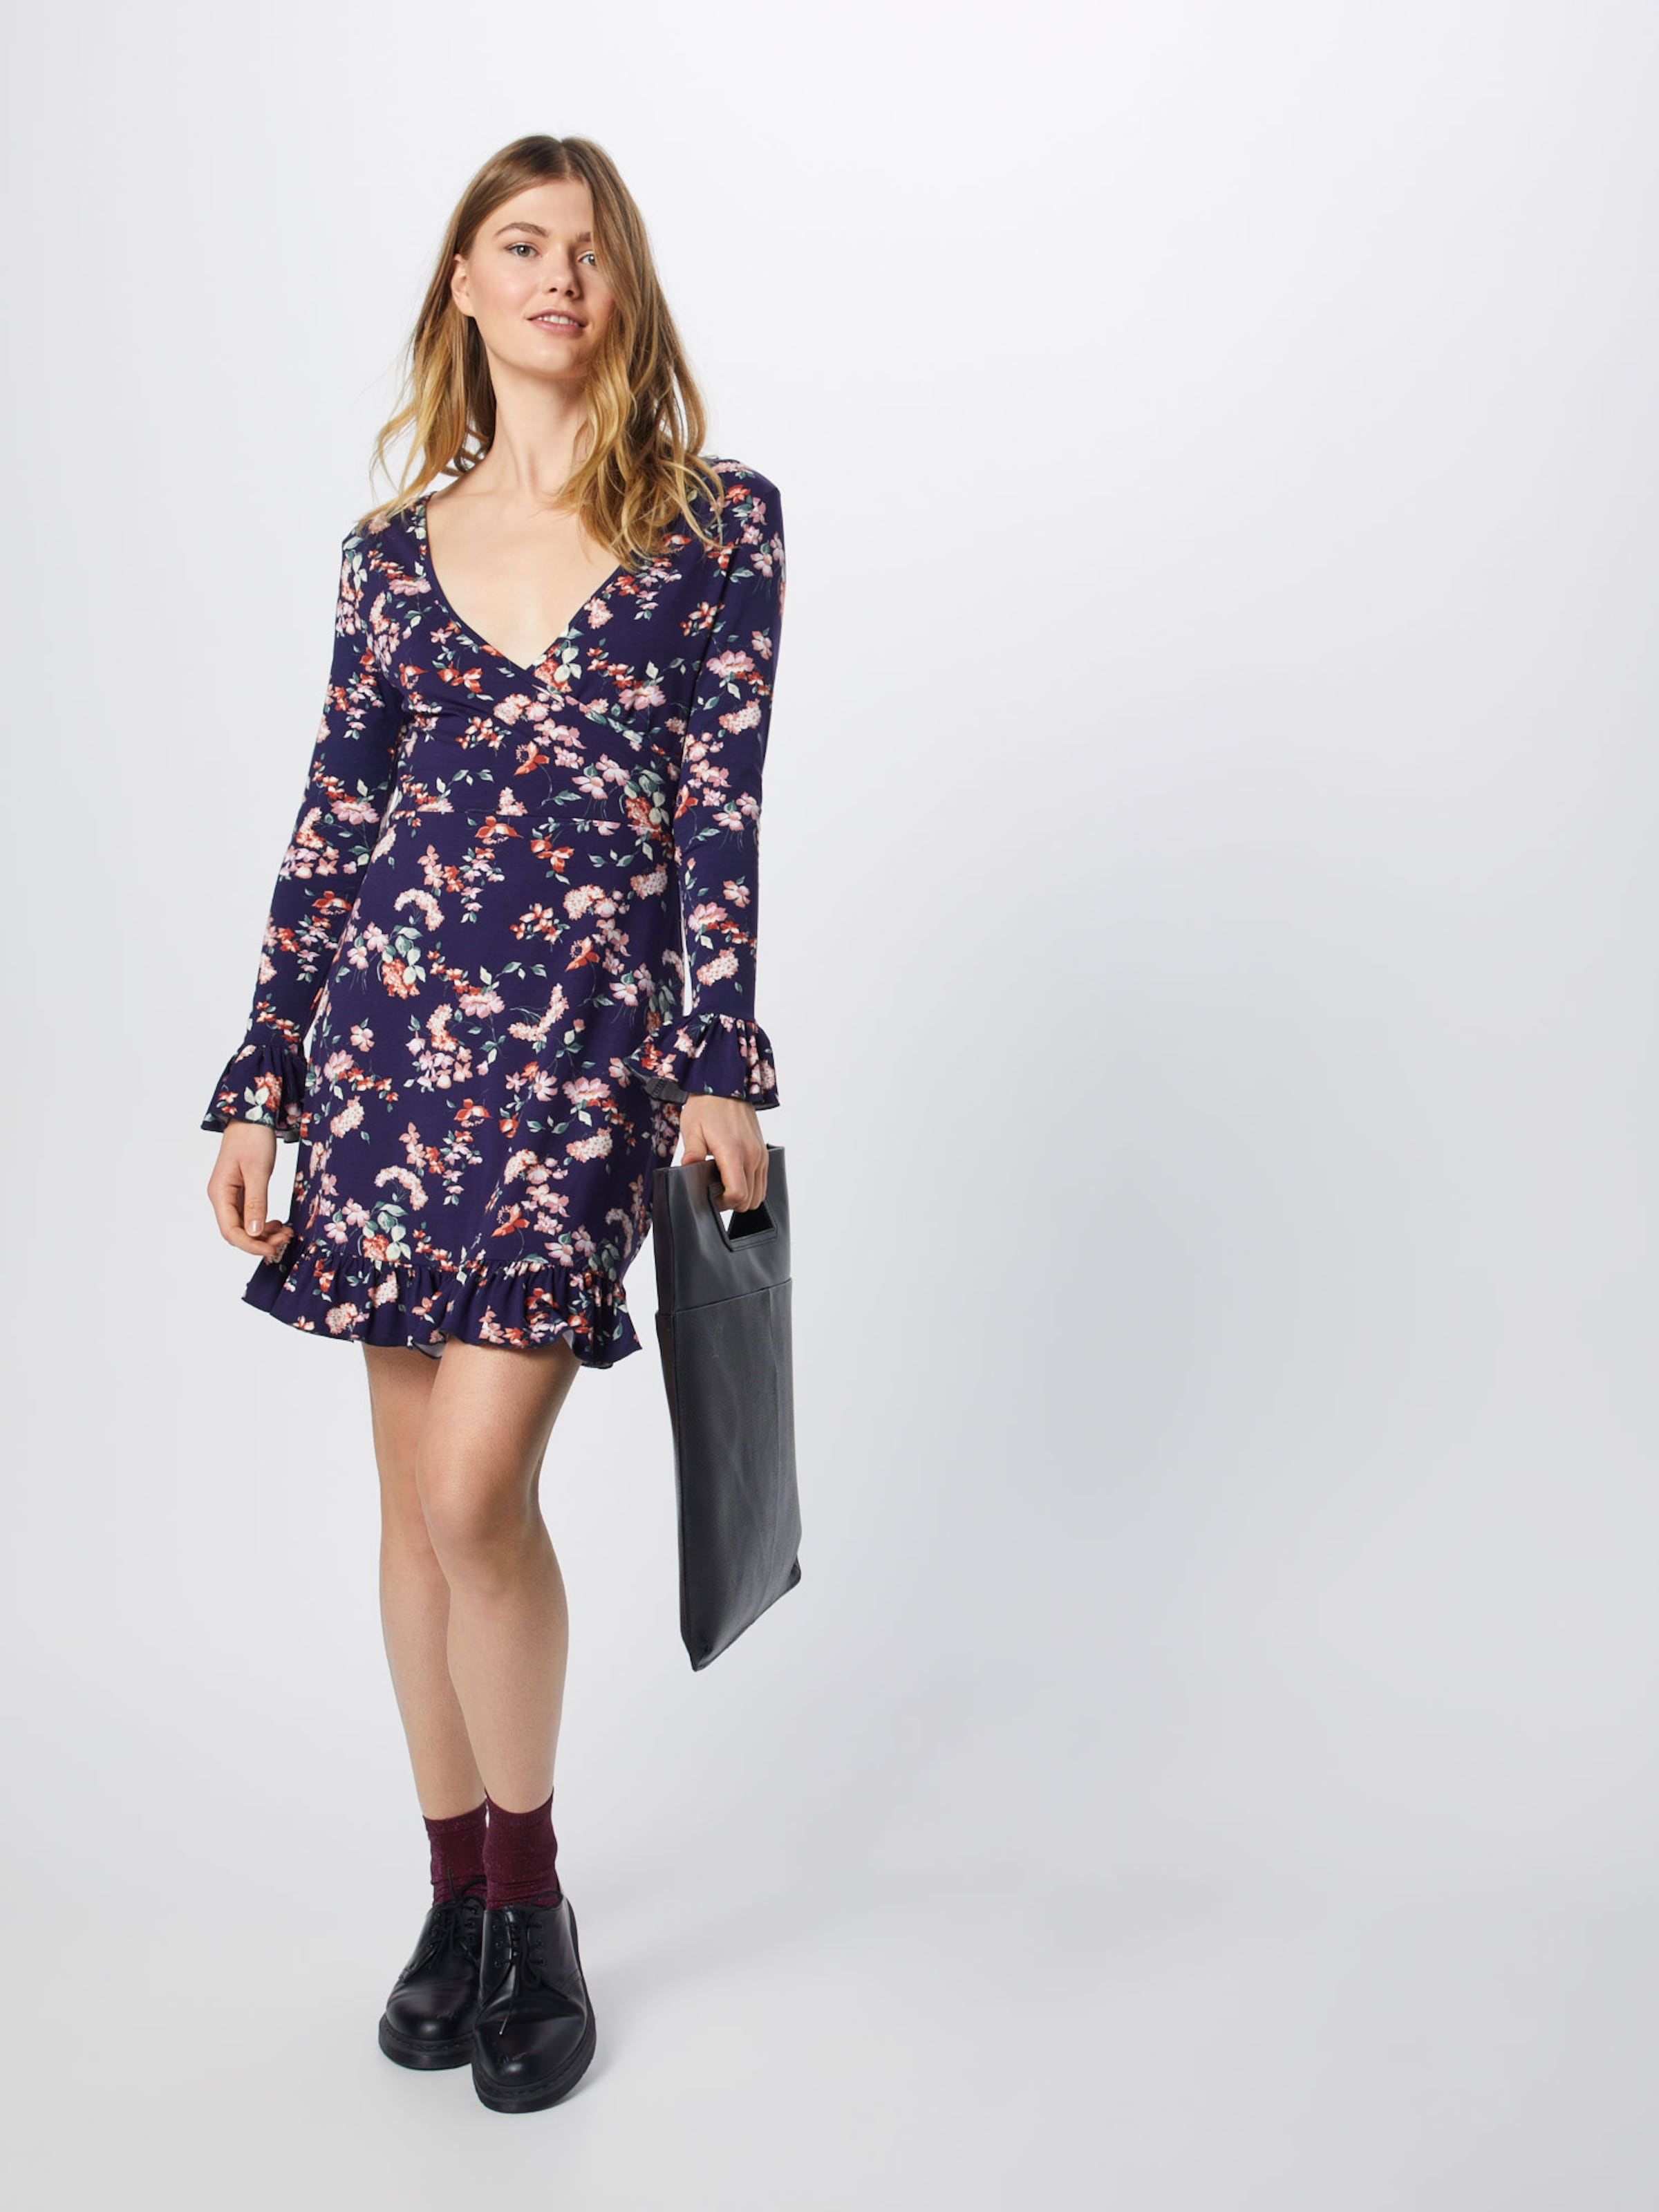 In Dress' Kleid 'floral Missguided Front NavyRosa Wrap wXZilPTOku